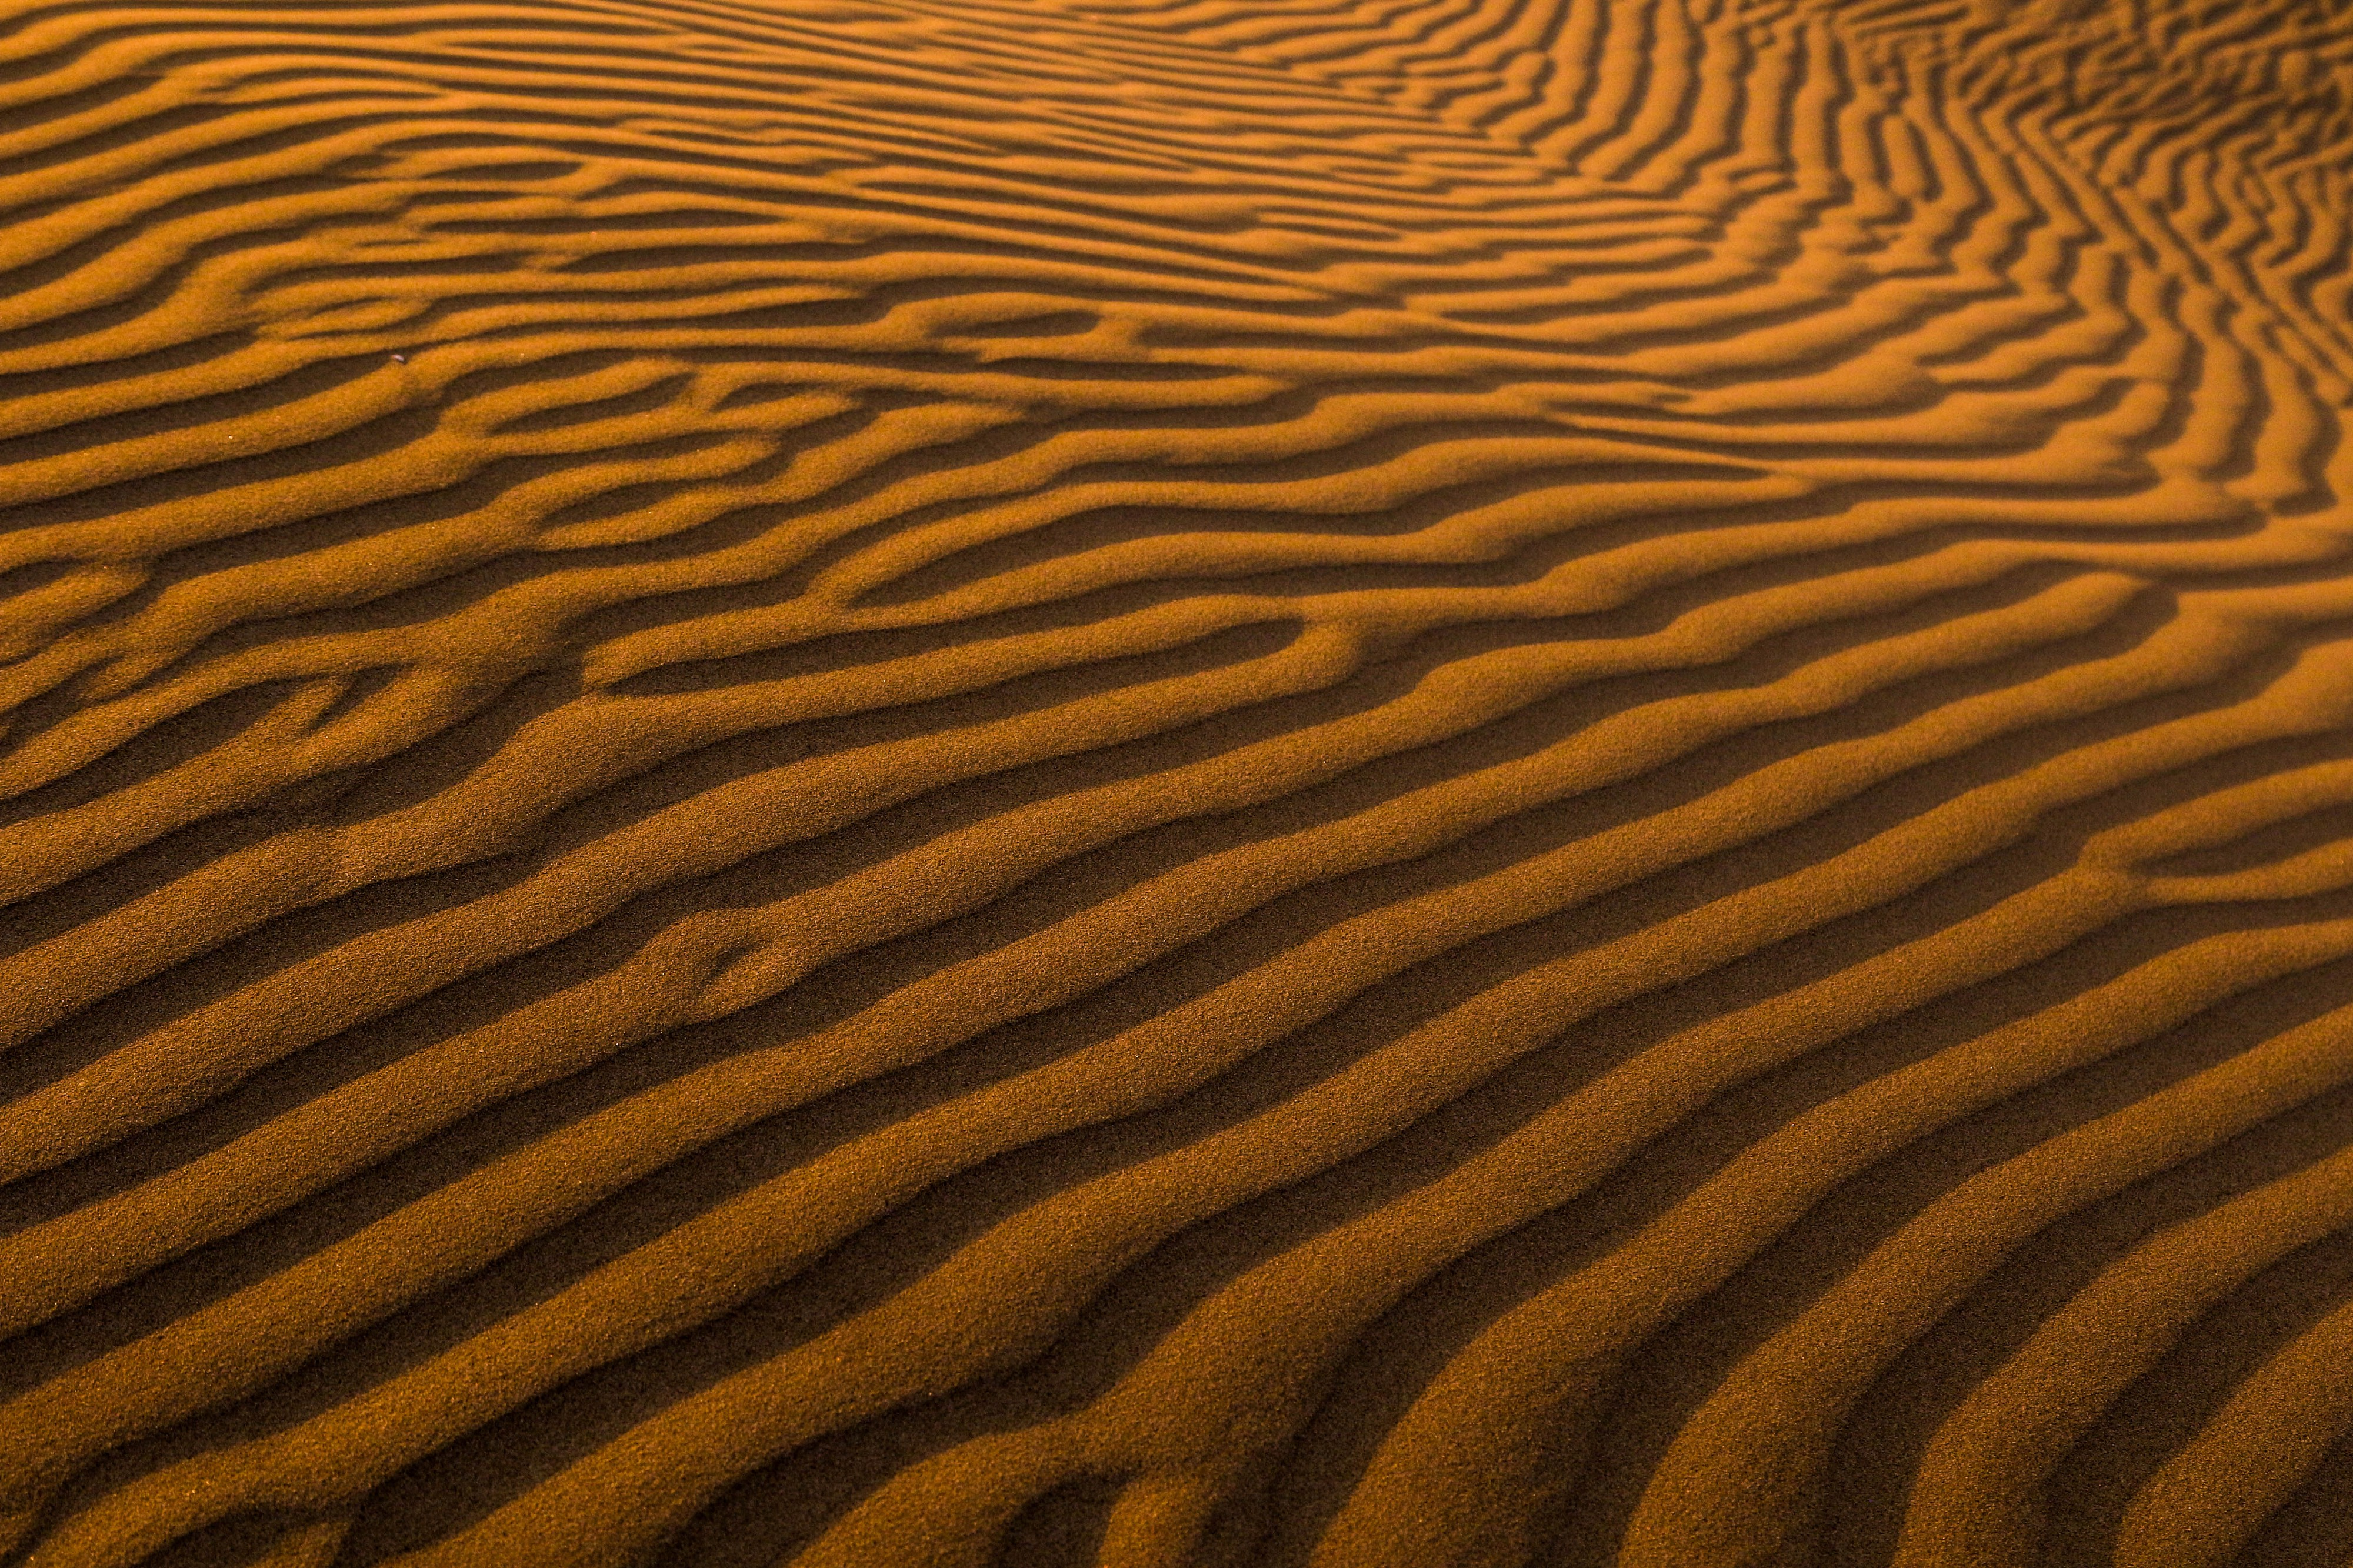 Image: the wind has made patterns in the sand in the desert